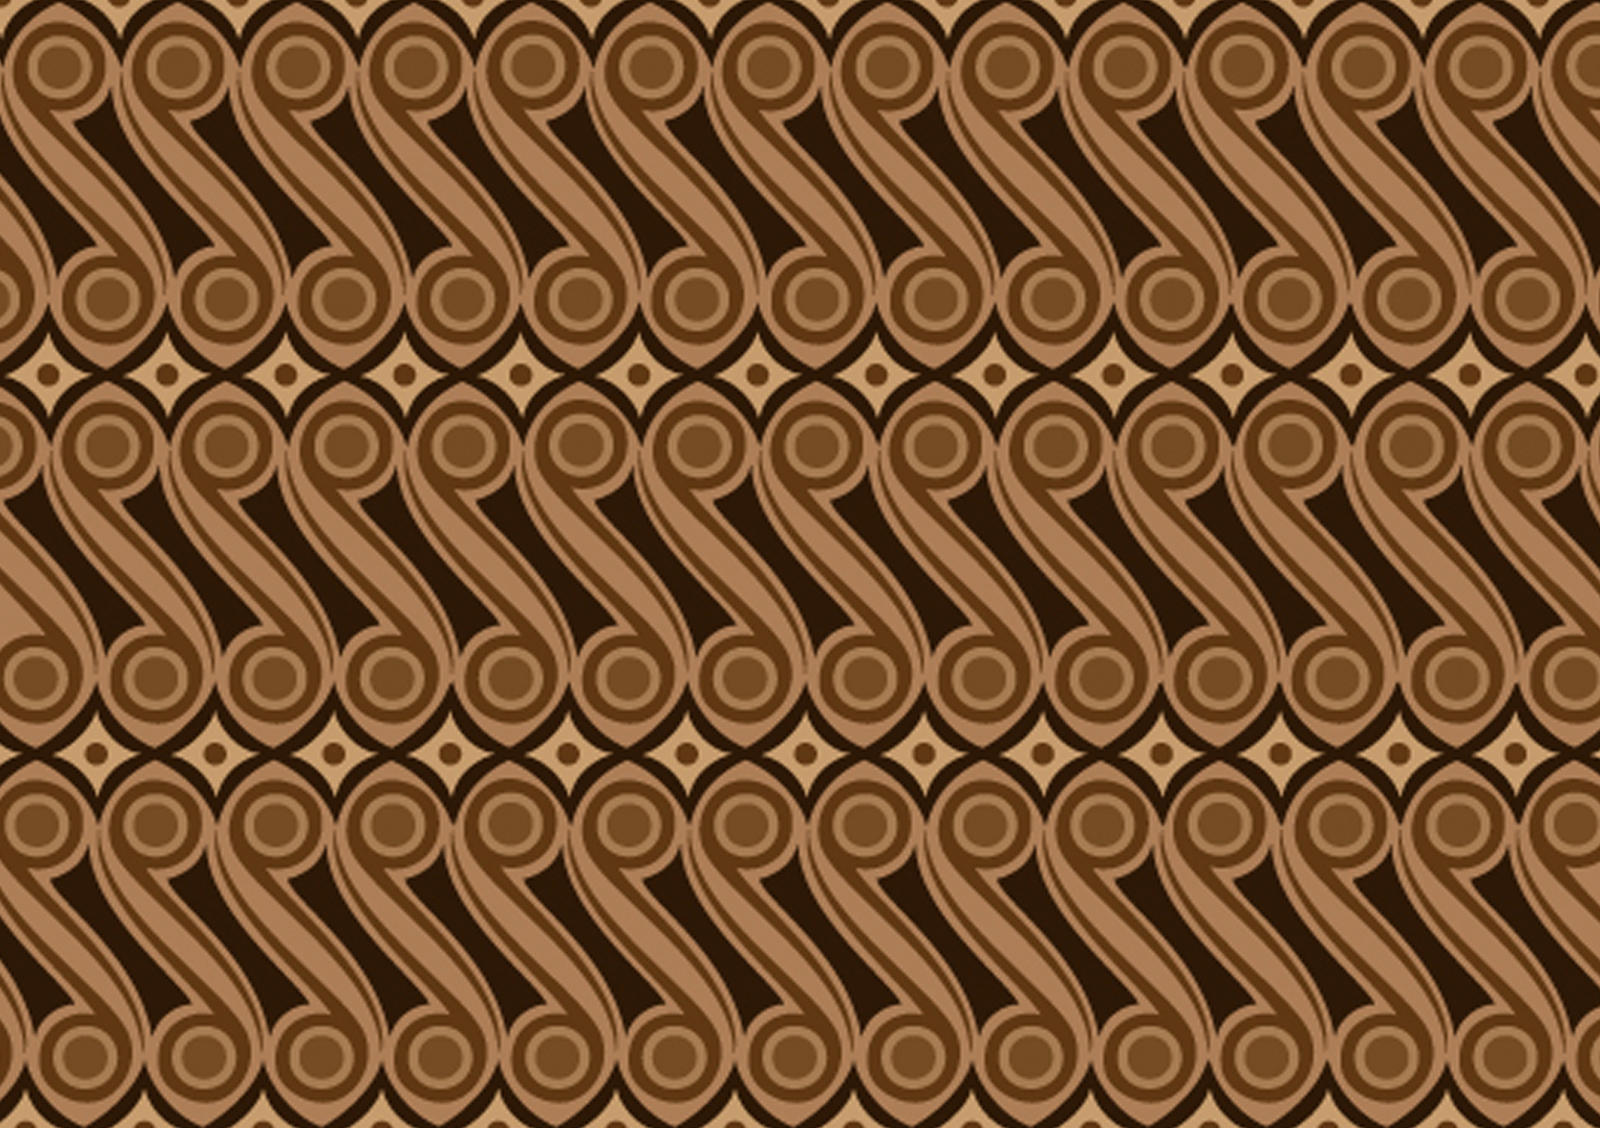 Traditional Motif Batik Wallpapers Hd Wallpapers For Android